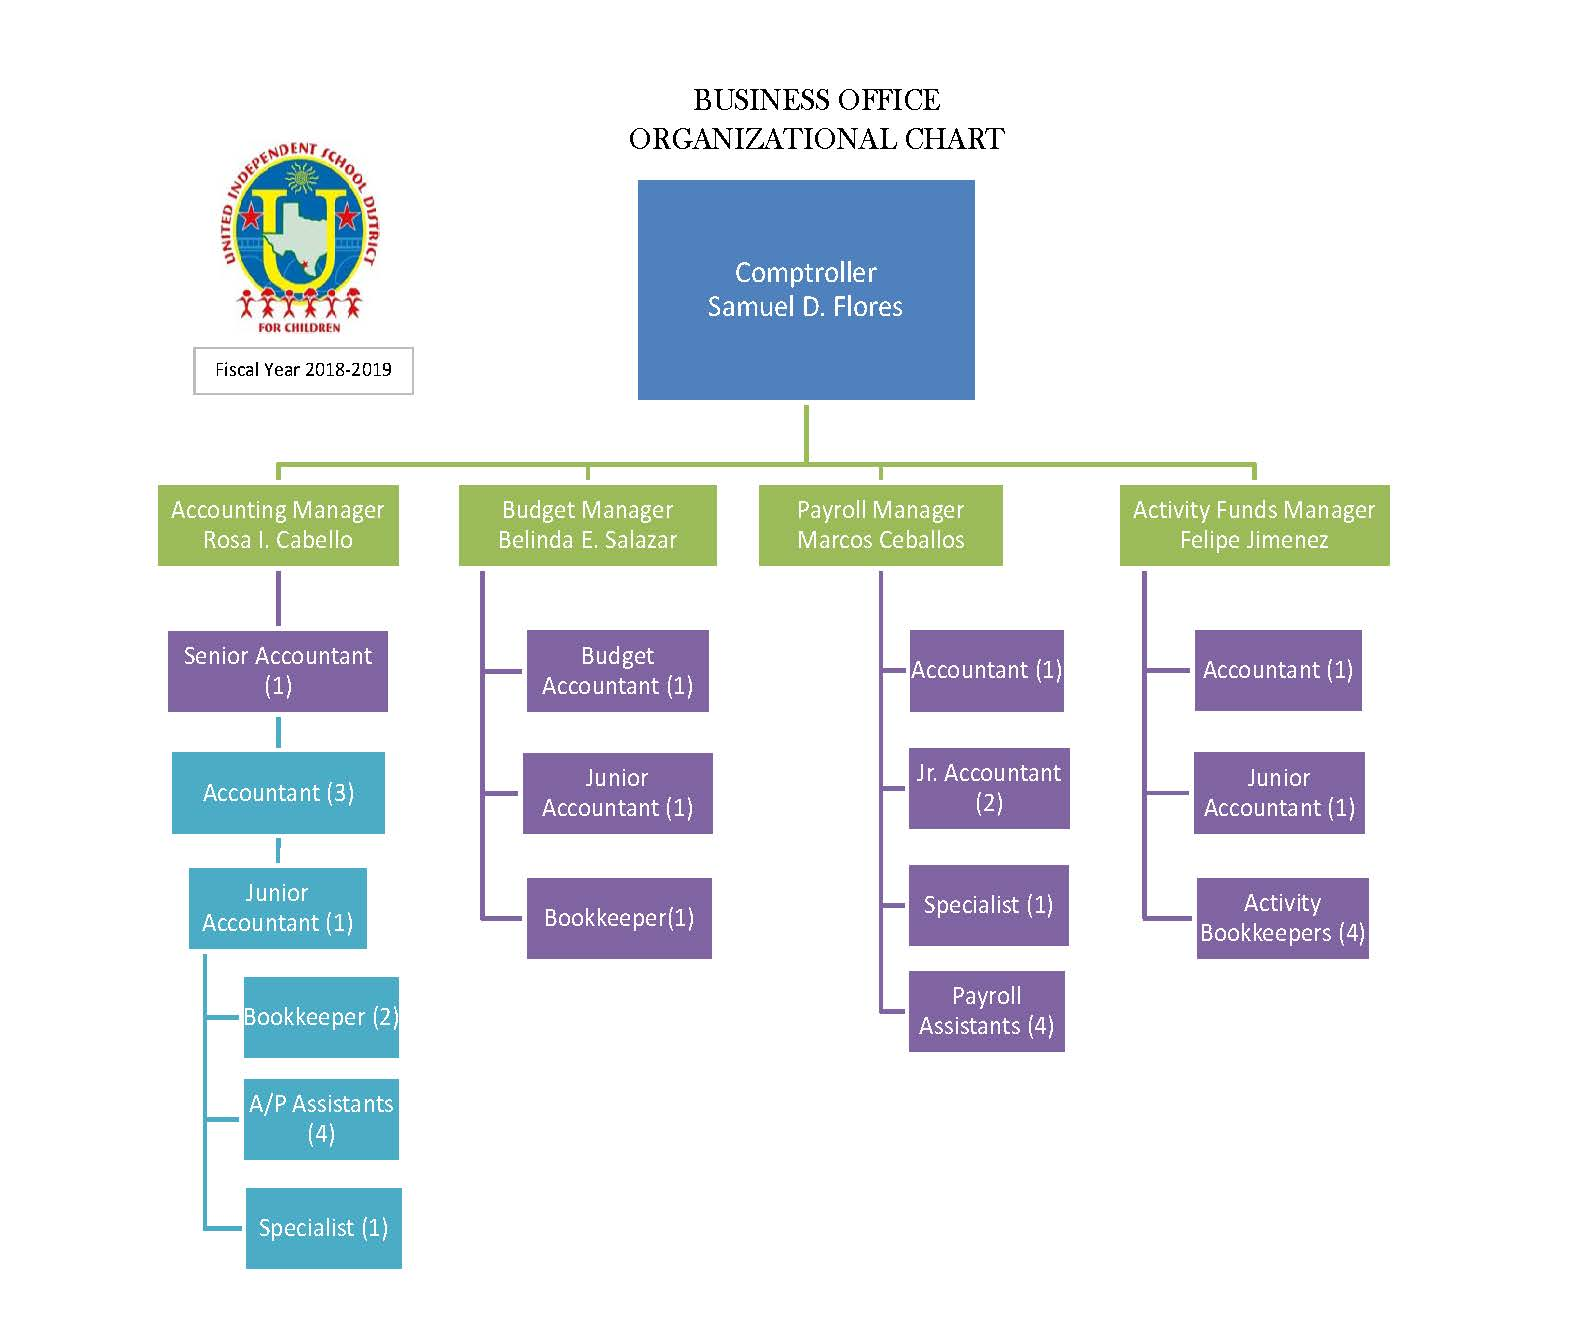 Business Office Organizational Chart